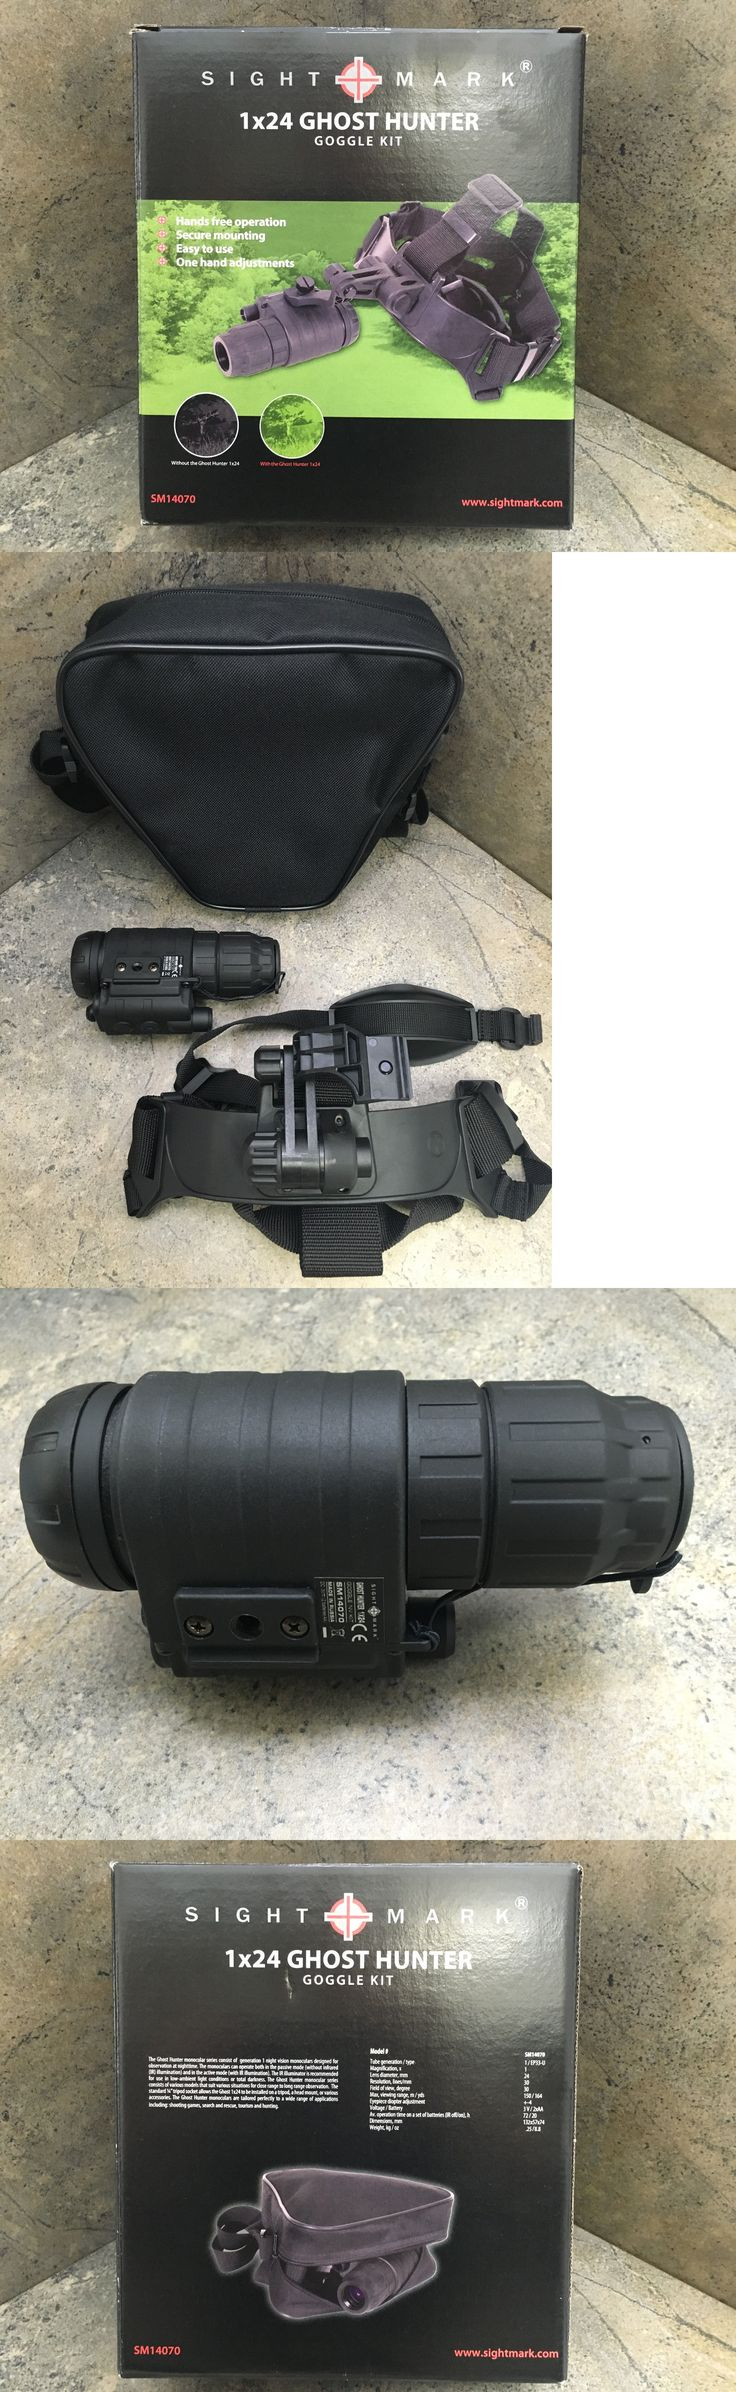 Night Vision Optics 40970: Sightmark Ghost Hunter 1X24 Night Vision Goggle Kit Sm14070 -> BUY IT NOW ONLY: $299.97 on eBay!